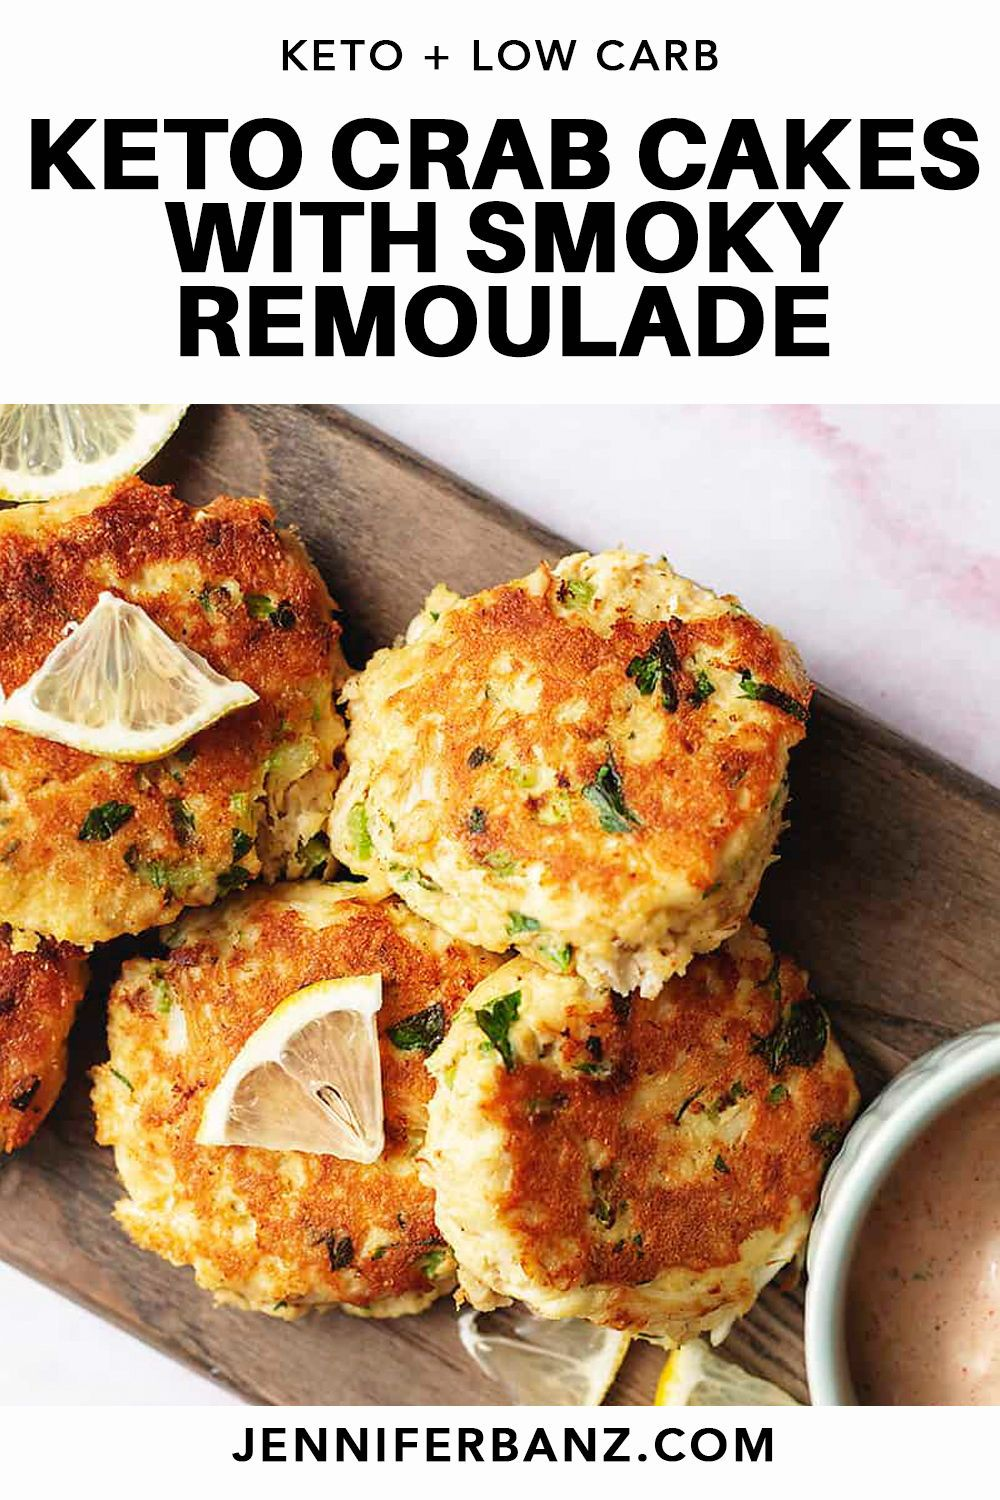 Keto Crab Cakes Is A Delicious And Impressive Dinner Minus All The Carbs Delicious Recipe For The Summer Diet Breakfast Recipes Crab Cakes Keto Recipes Easy